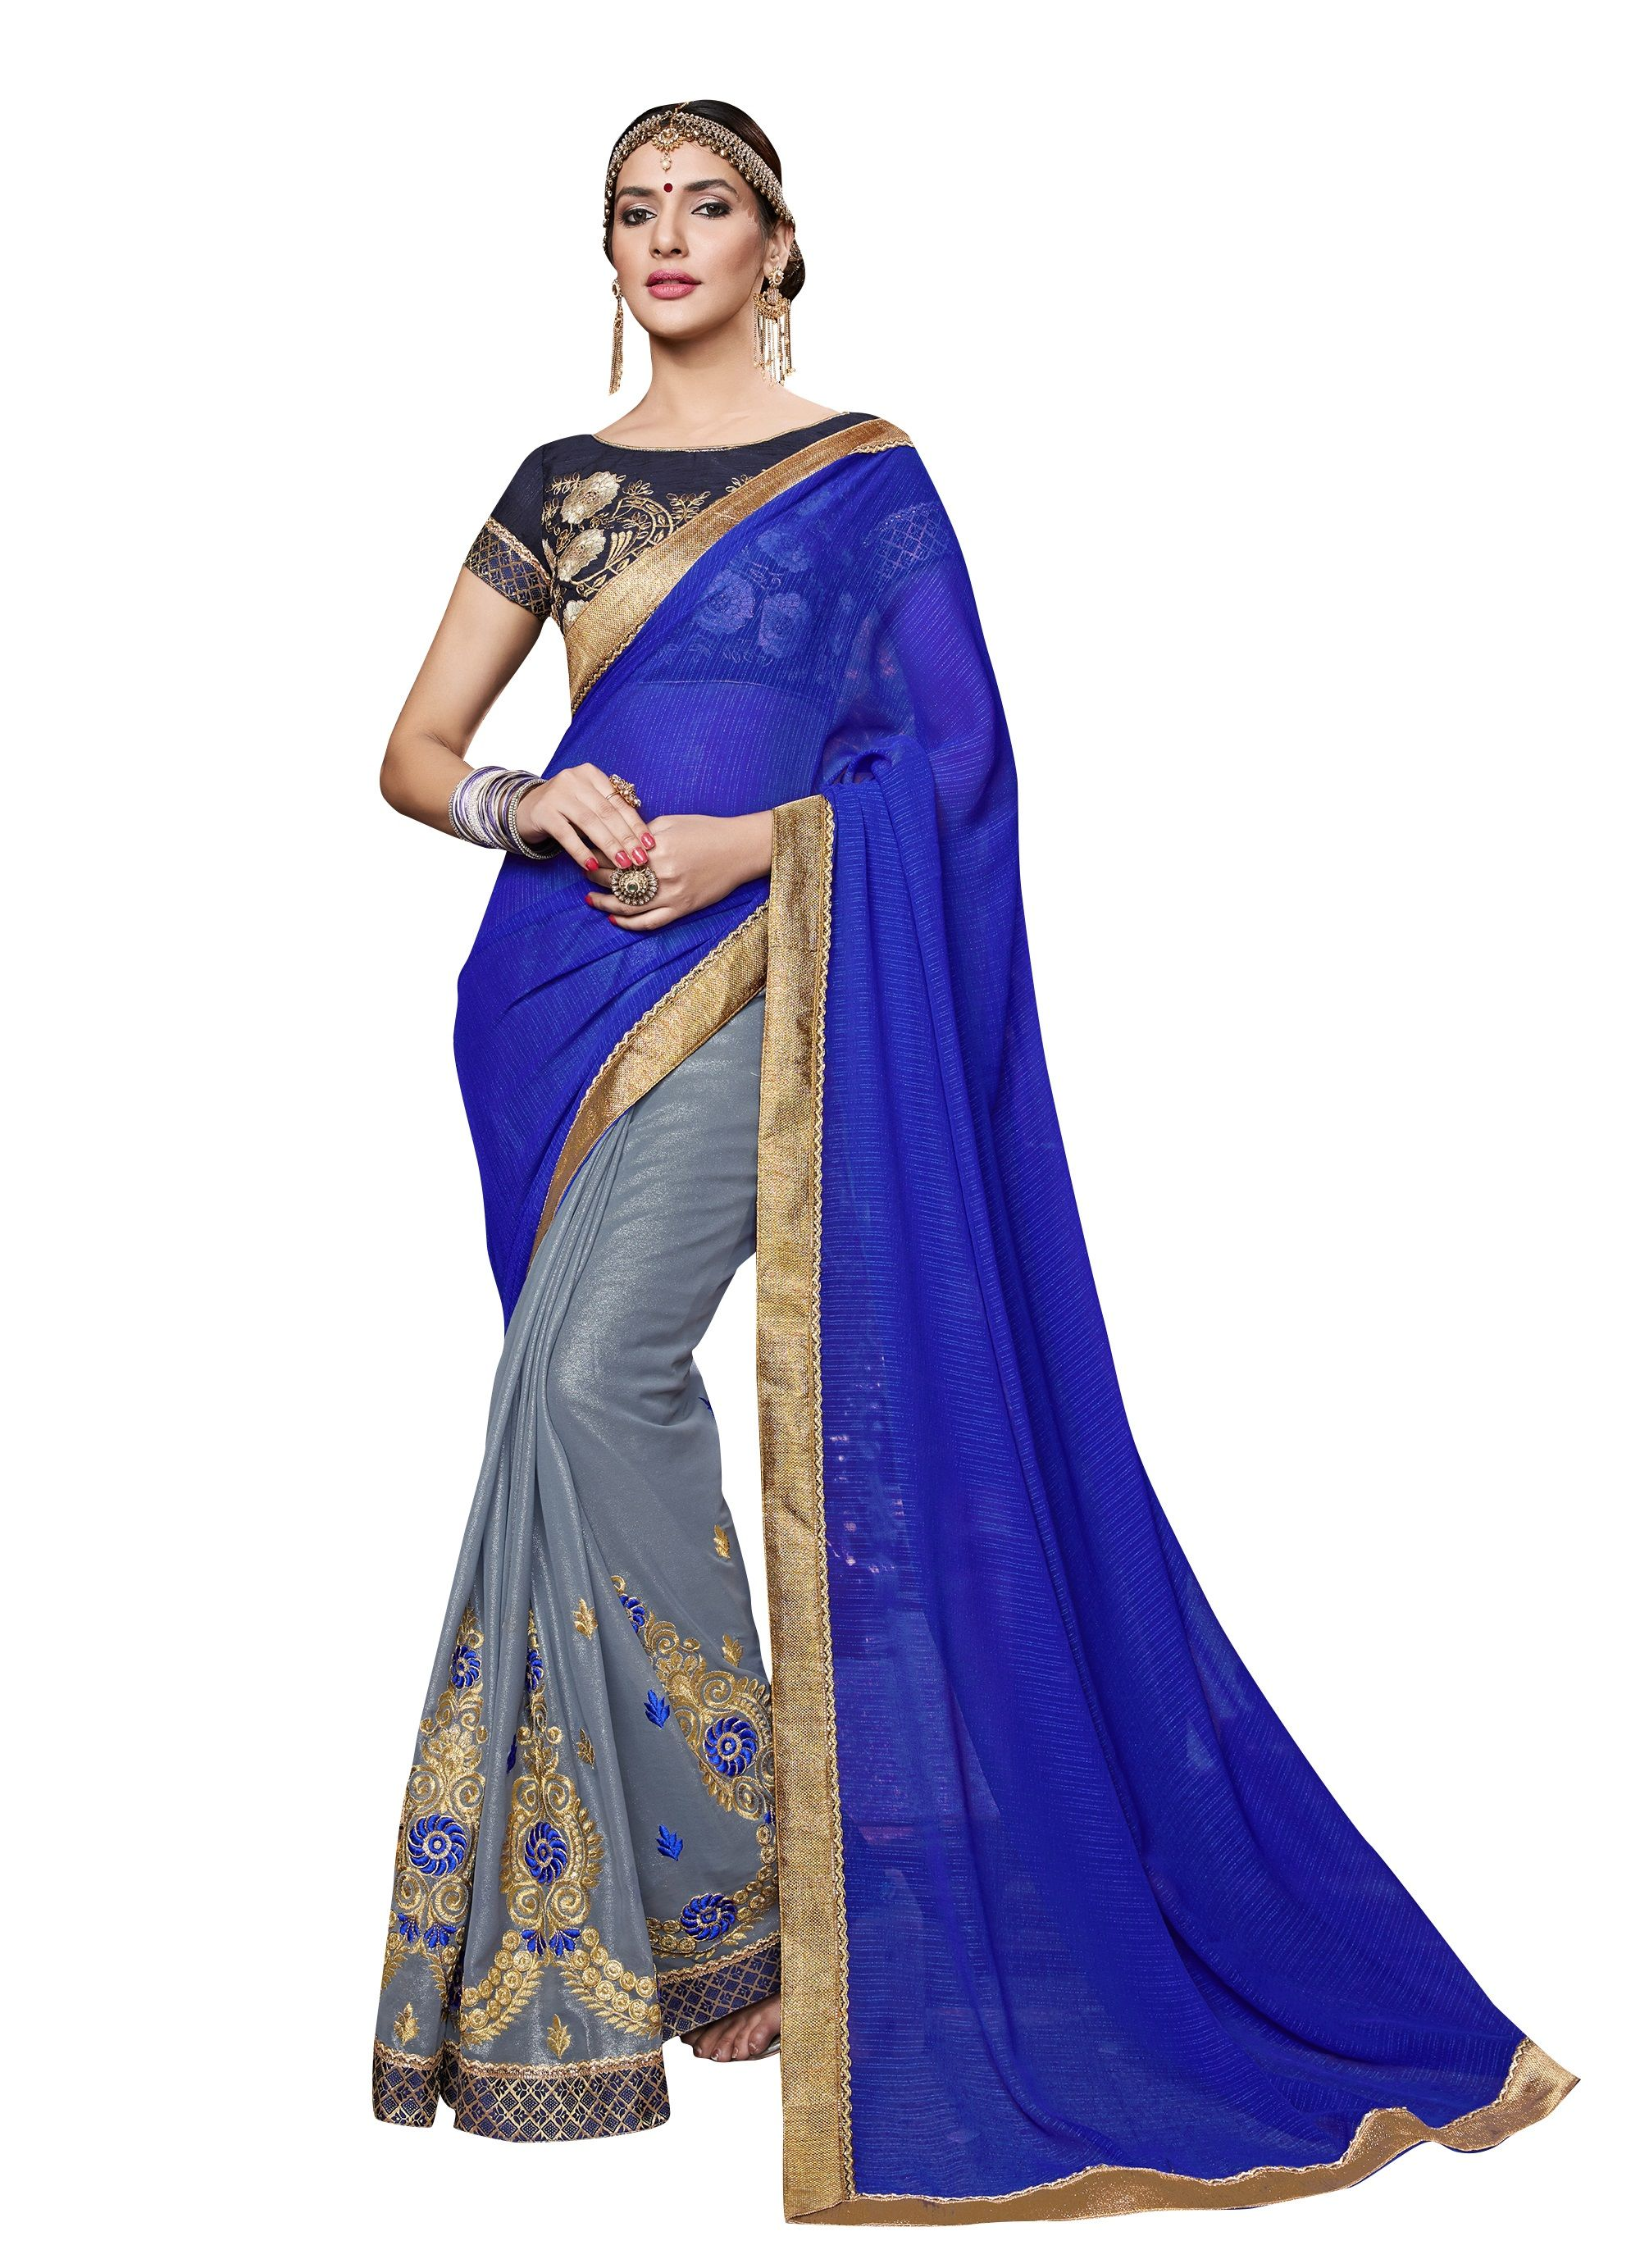 6ab48889a5ac8 Shop Blue And Grey Colored Georgette Saree. Online in Singapore ...